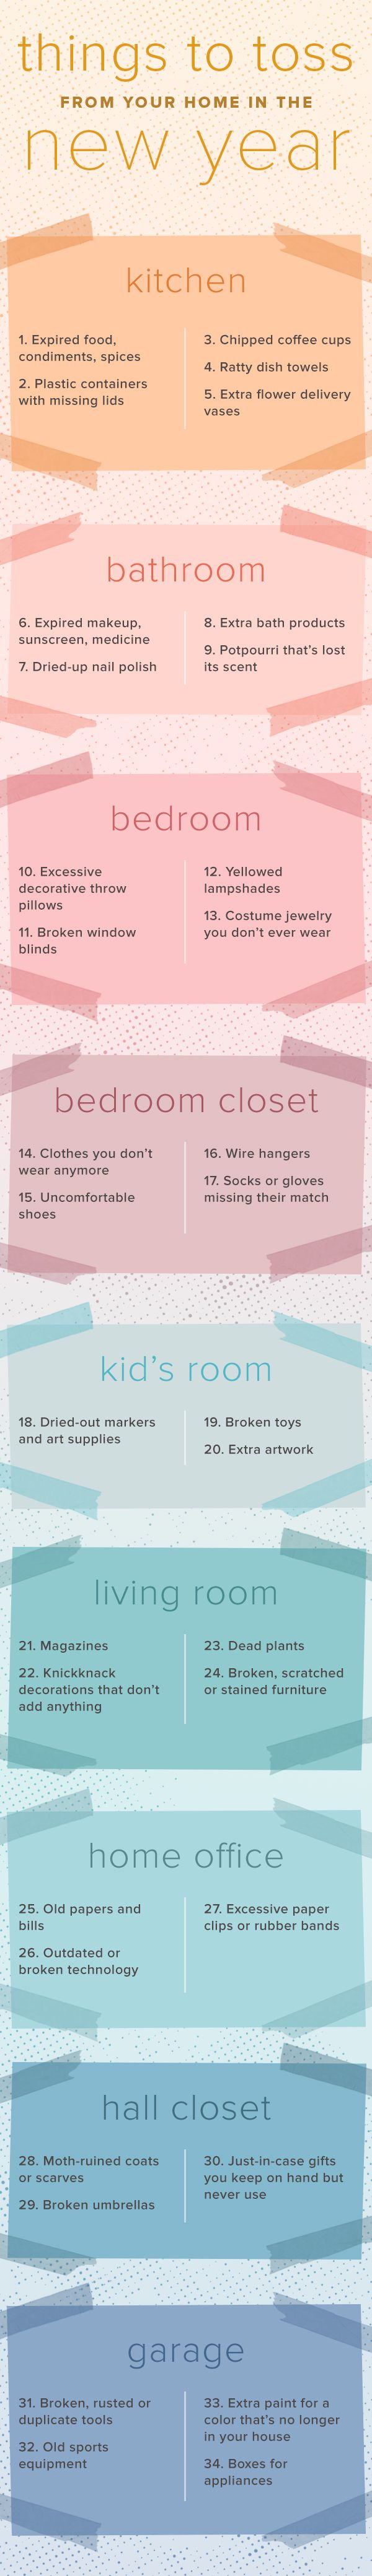 Follow this checklist of things to purge and throw away in the new year. It will help you get organized in your bedroom, kitchen, office, living room, garage and more.